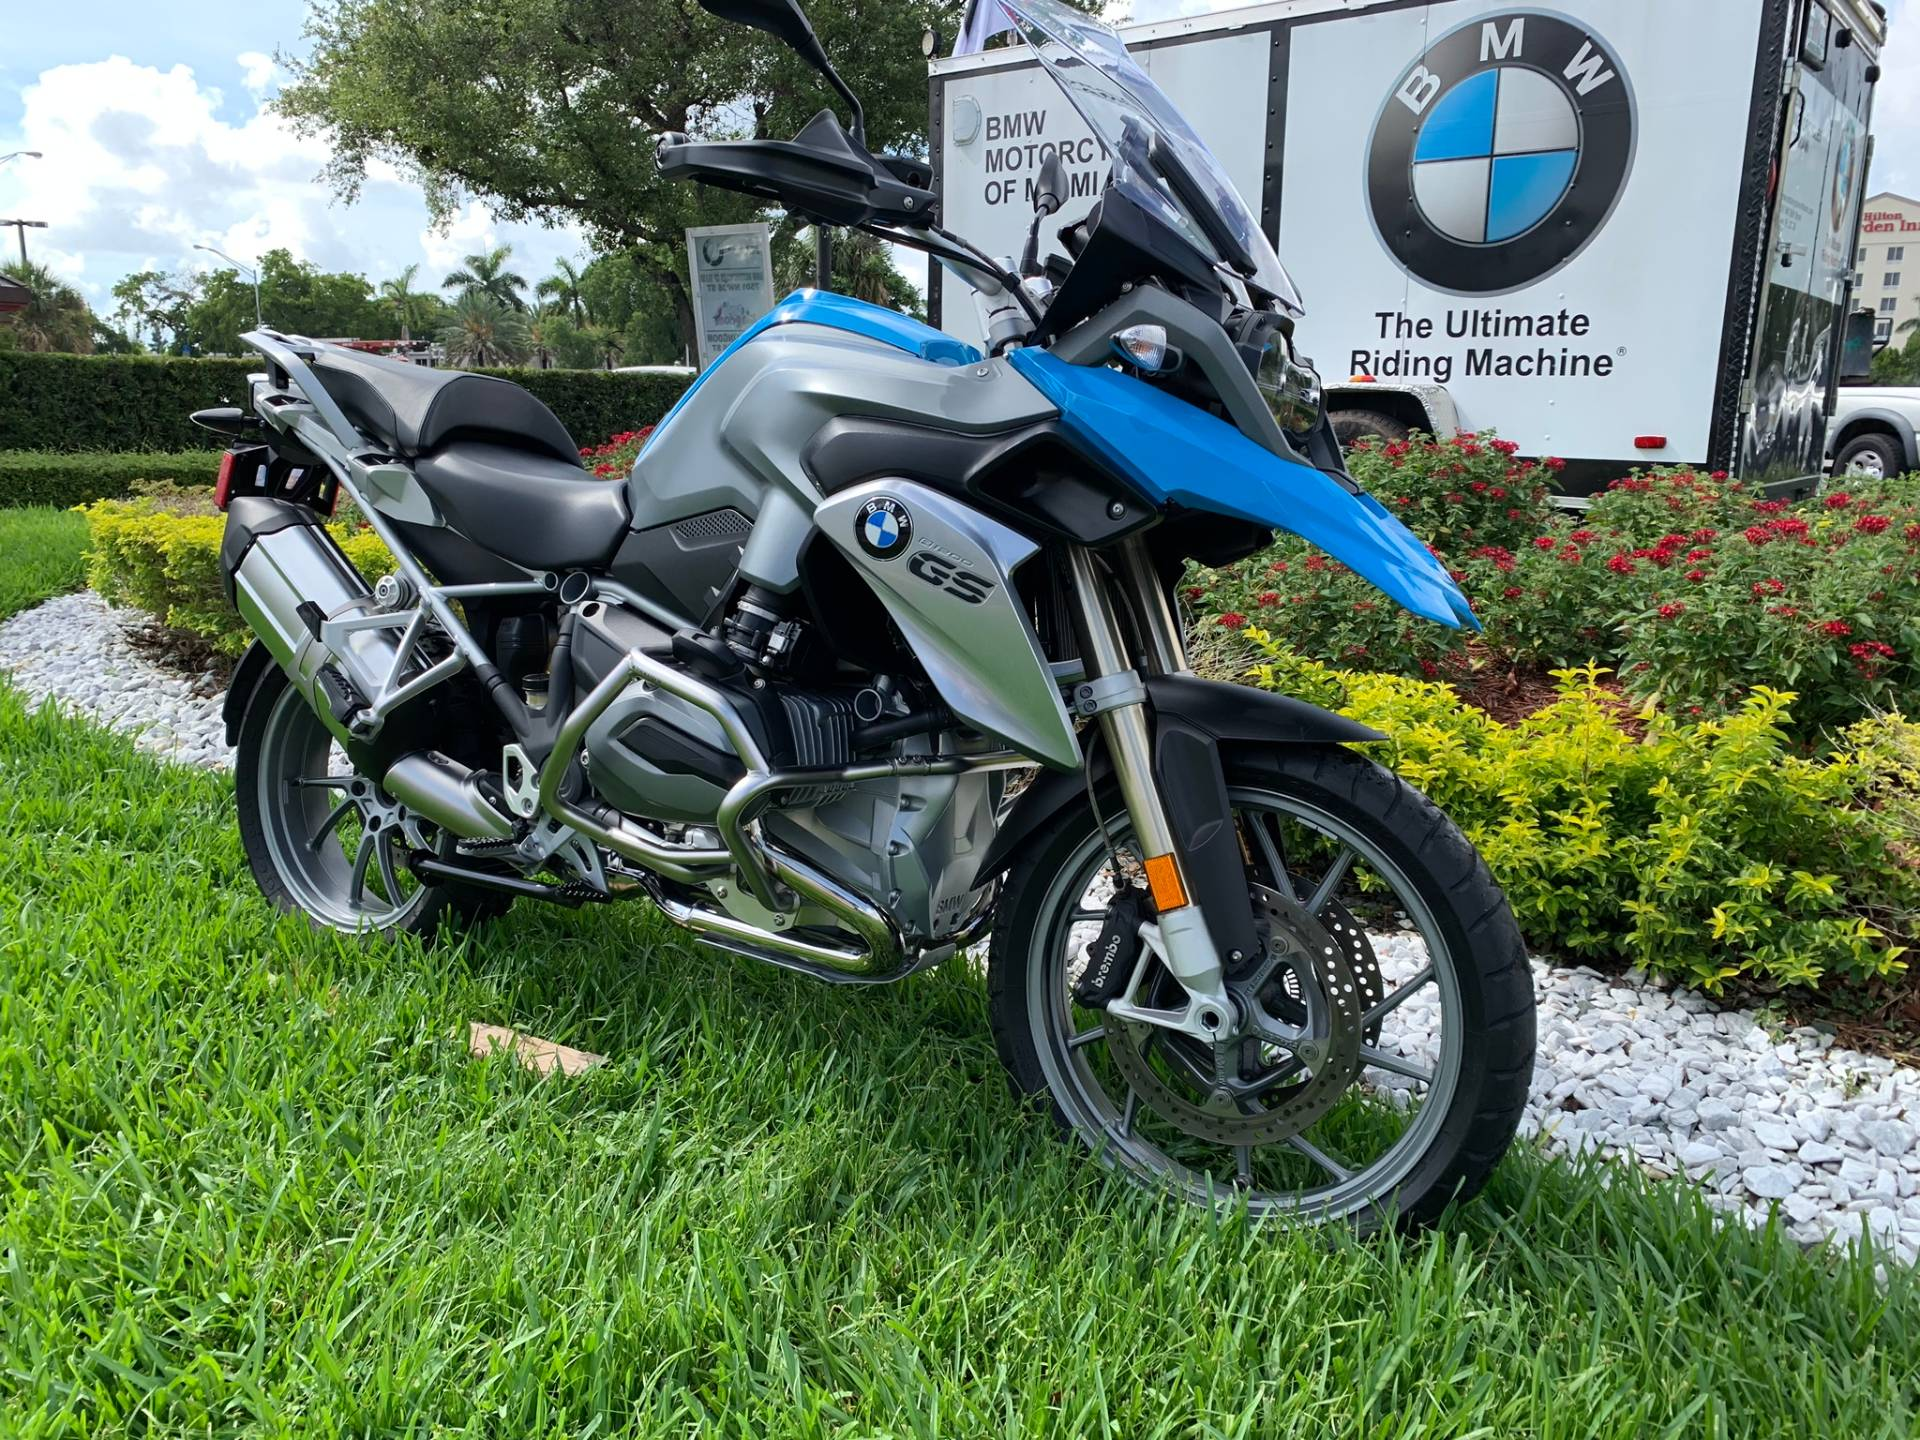 Used 2014 BMW R 1200 GS for sale, Pre-owned BMW R1200GS for sale, BMW Motorcycle Adventure, used BMW GS Fire Blue, BMW Motorcycles of Miami, Motorcycles of Miami, Motorcycles Miami, New Motorcycles, Used Motorcycles, pre-owned. #BMWMotorcyclesOfMiami #MotorcyclesOfMiami - Photo 27